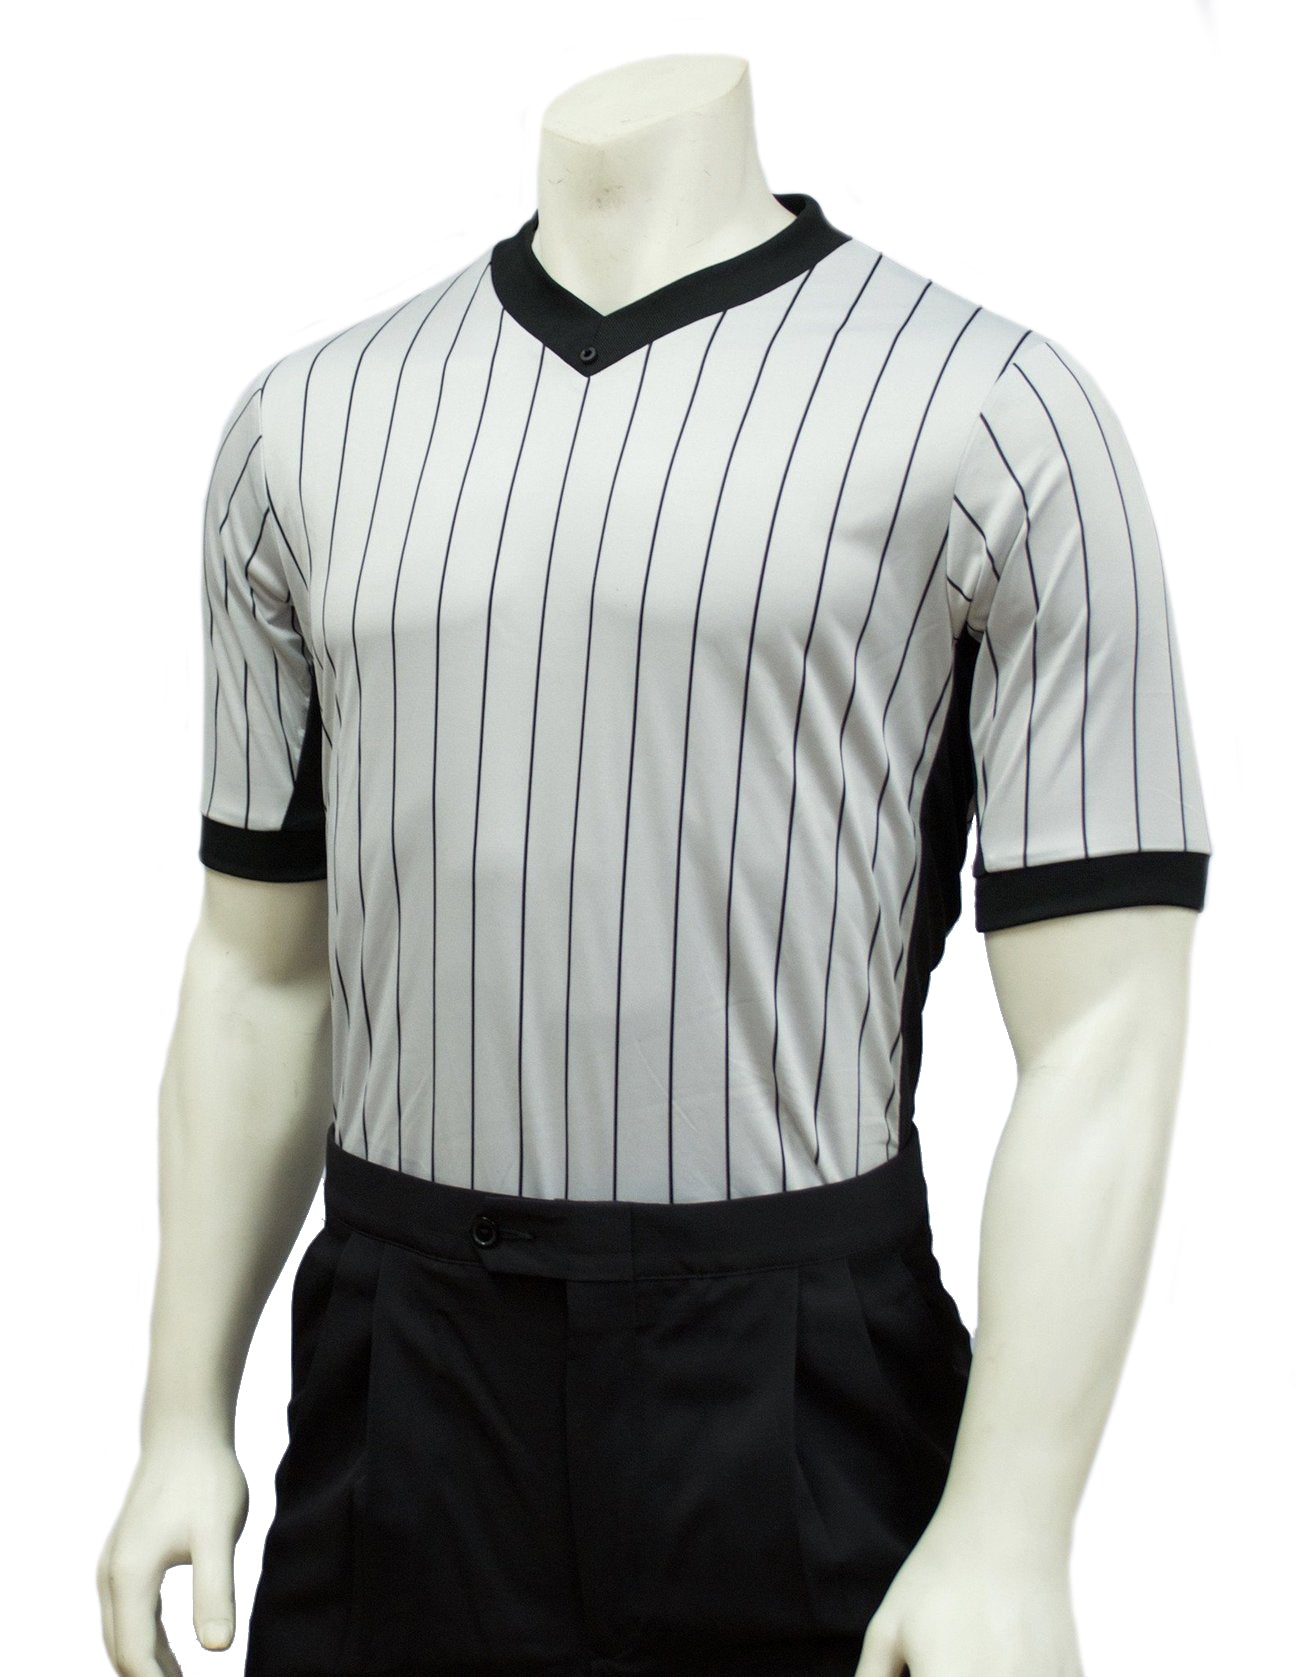 BKS206-Smitty Grey Elite Performance Interlock V-Neck Shirt w/ Black Pinstripe and Side Panel